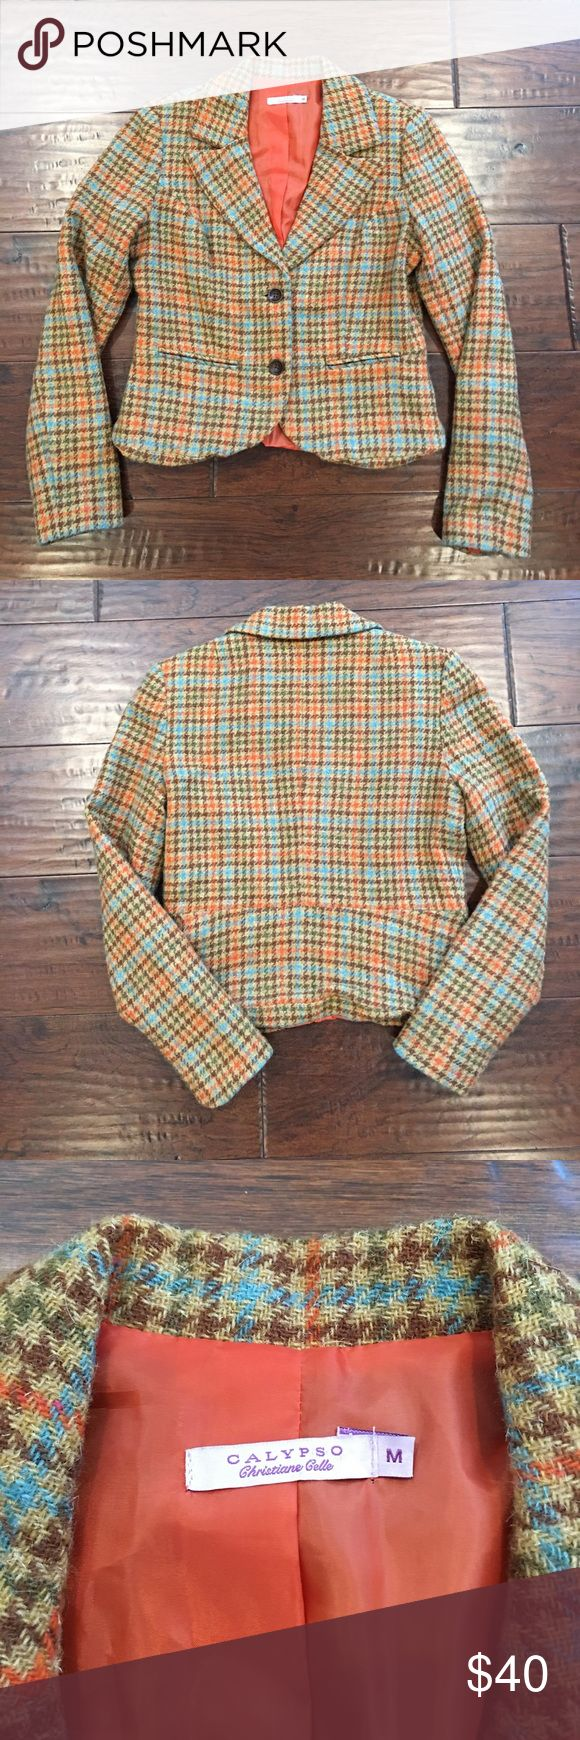 Wool 2 Button Front Calypso Blazer Houndstooth plaid blazer with orange lining. Great looking coat! Calypso St. Barth Jackets & Coats